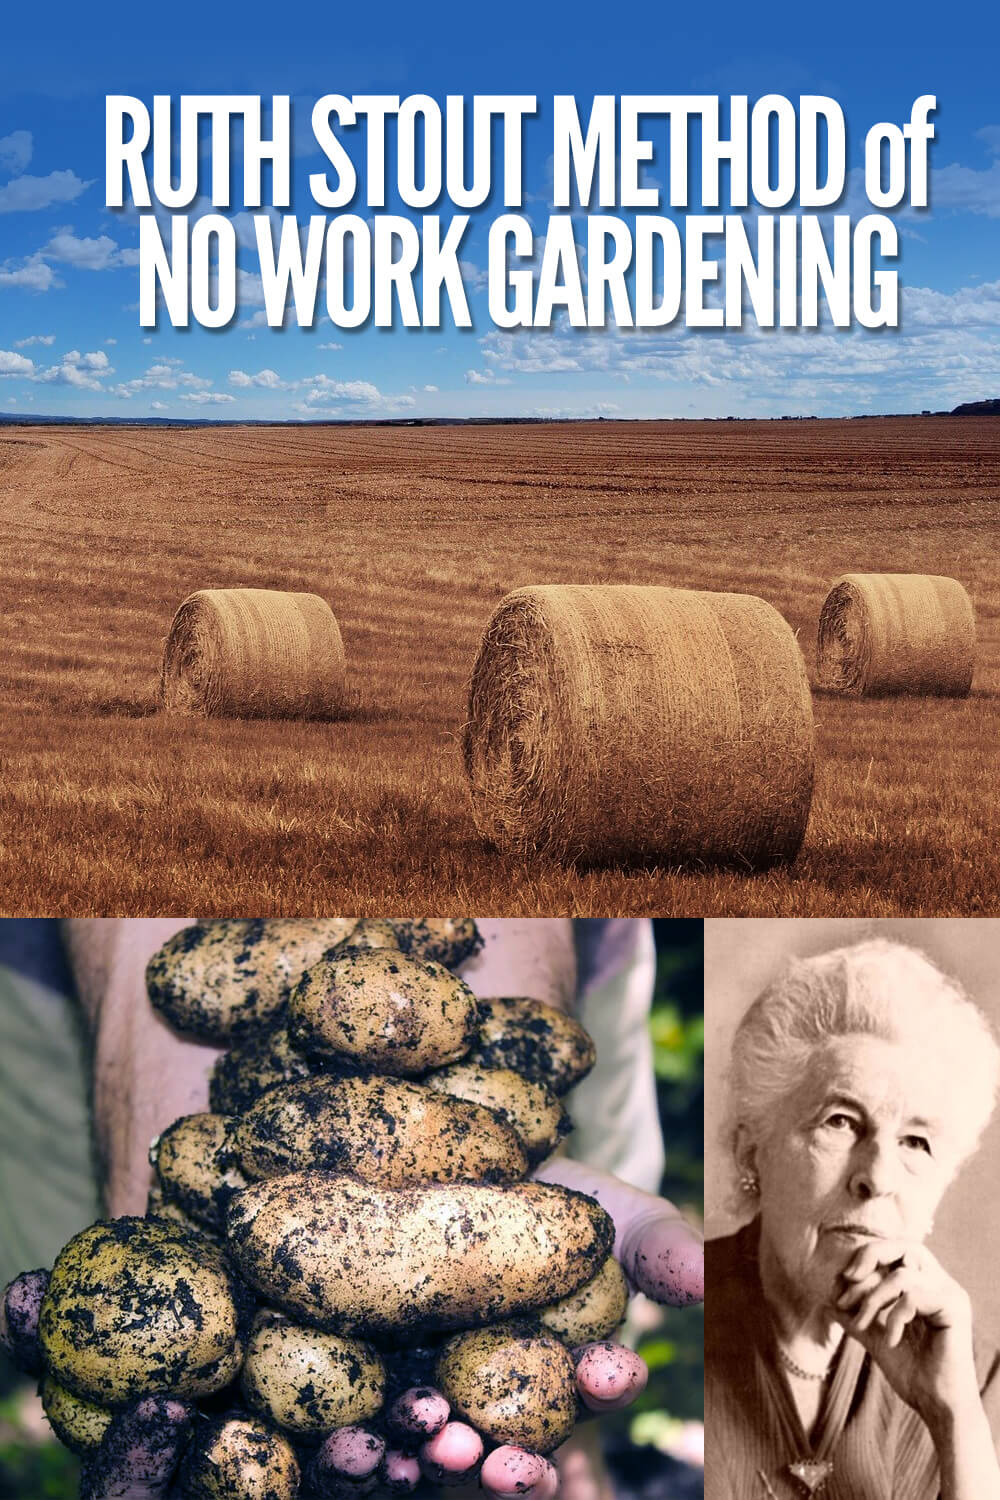 Ruth Stout Method of No Work Gardening by Roots Nursery